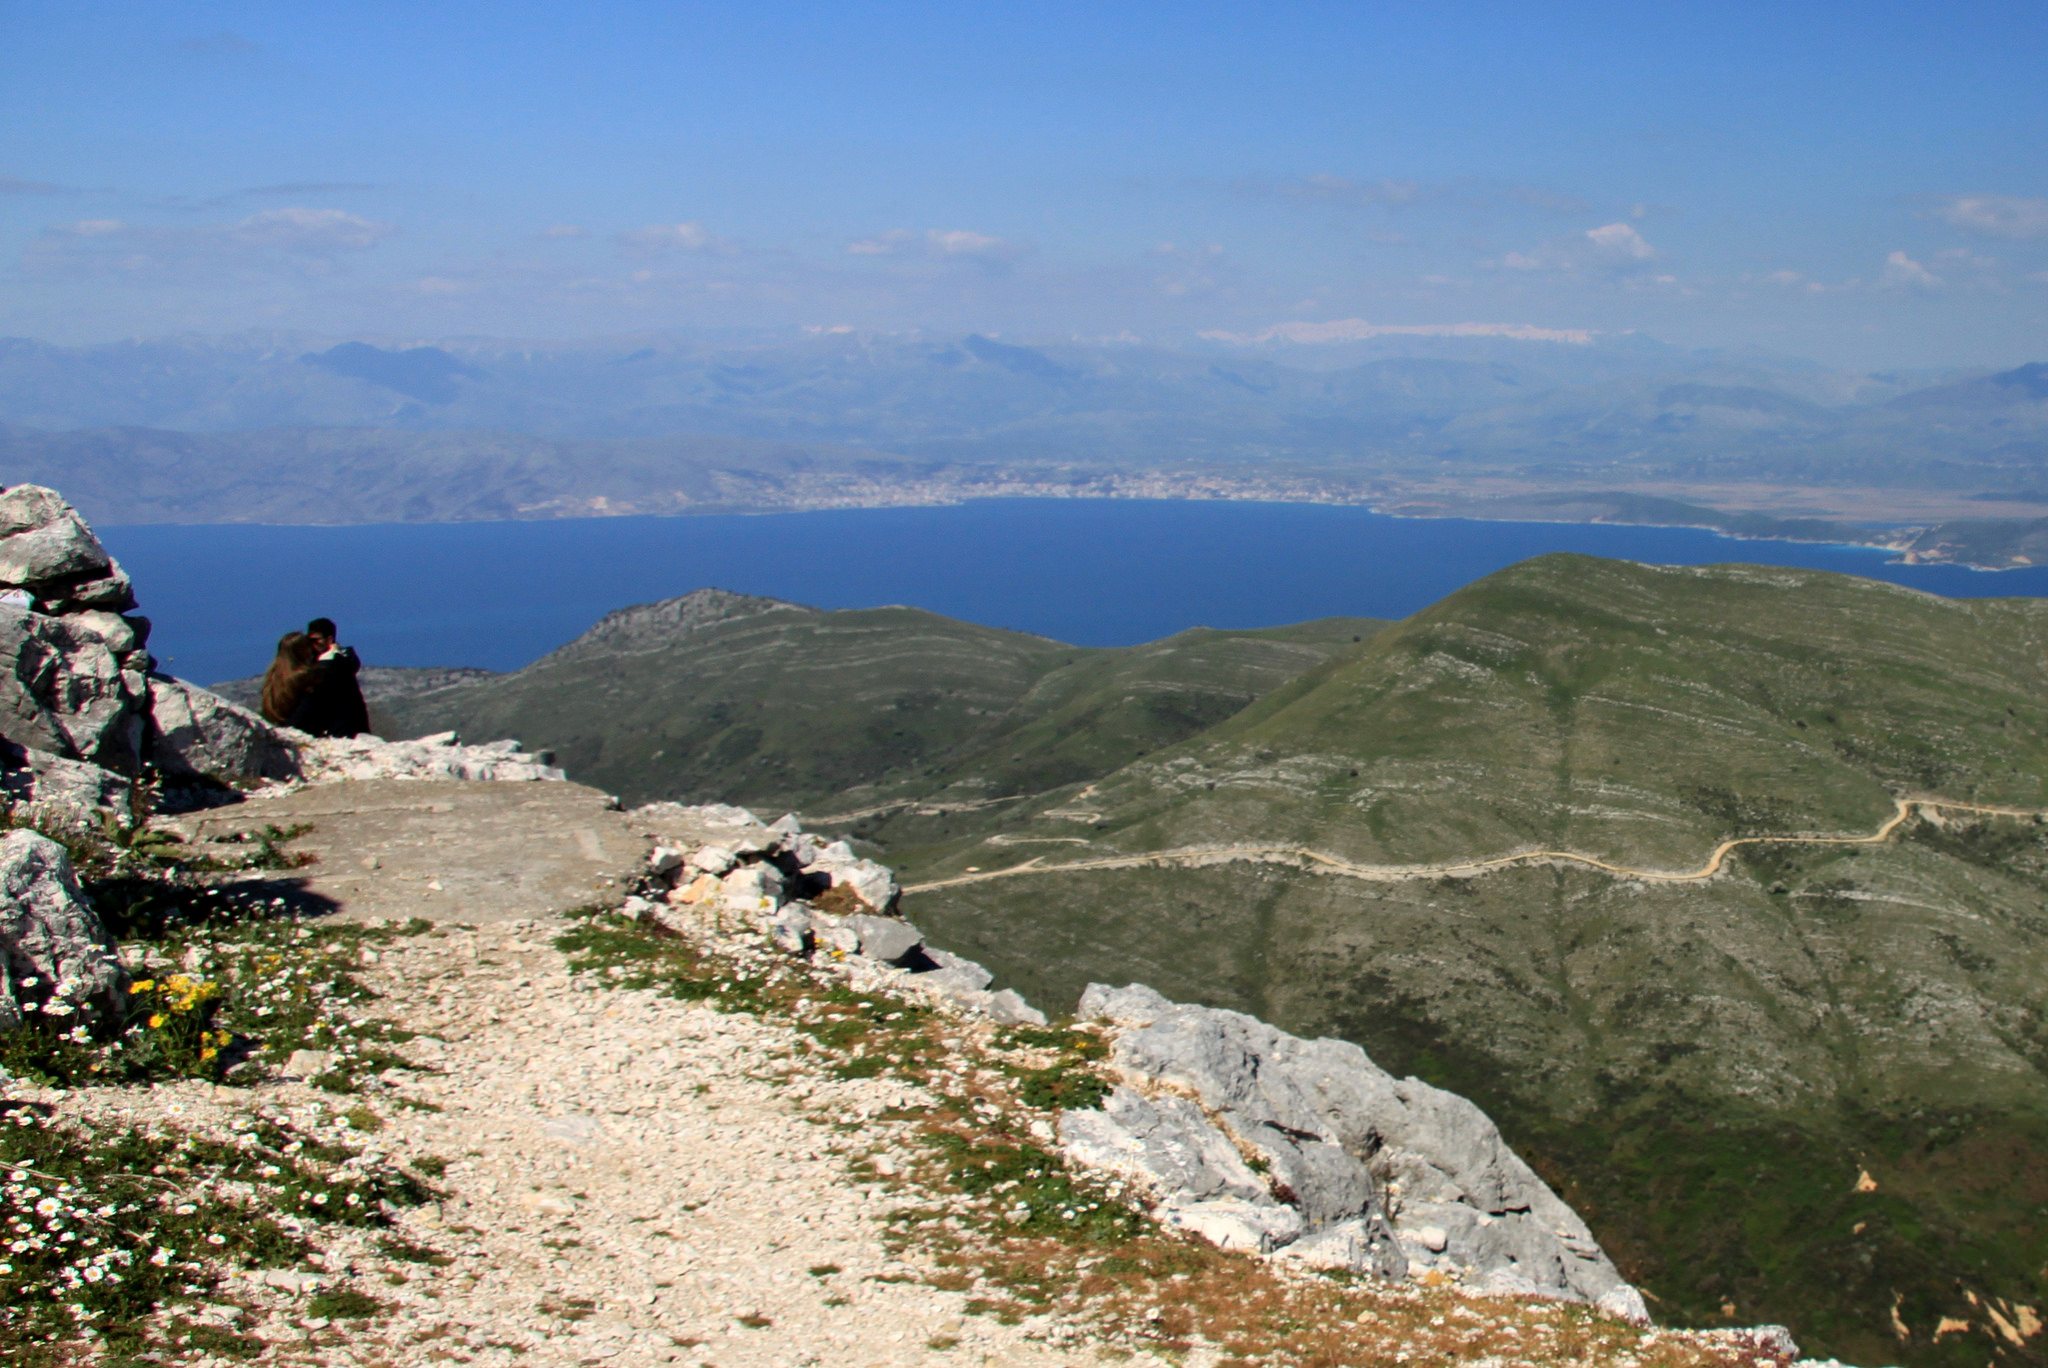 Mount Pantokrator - Mountain in Corfu - Thousand Wonders